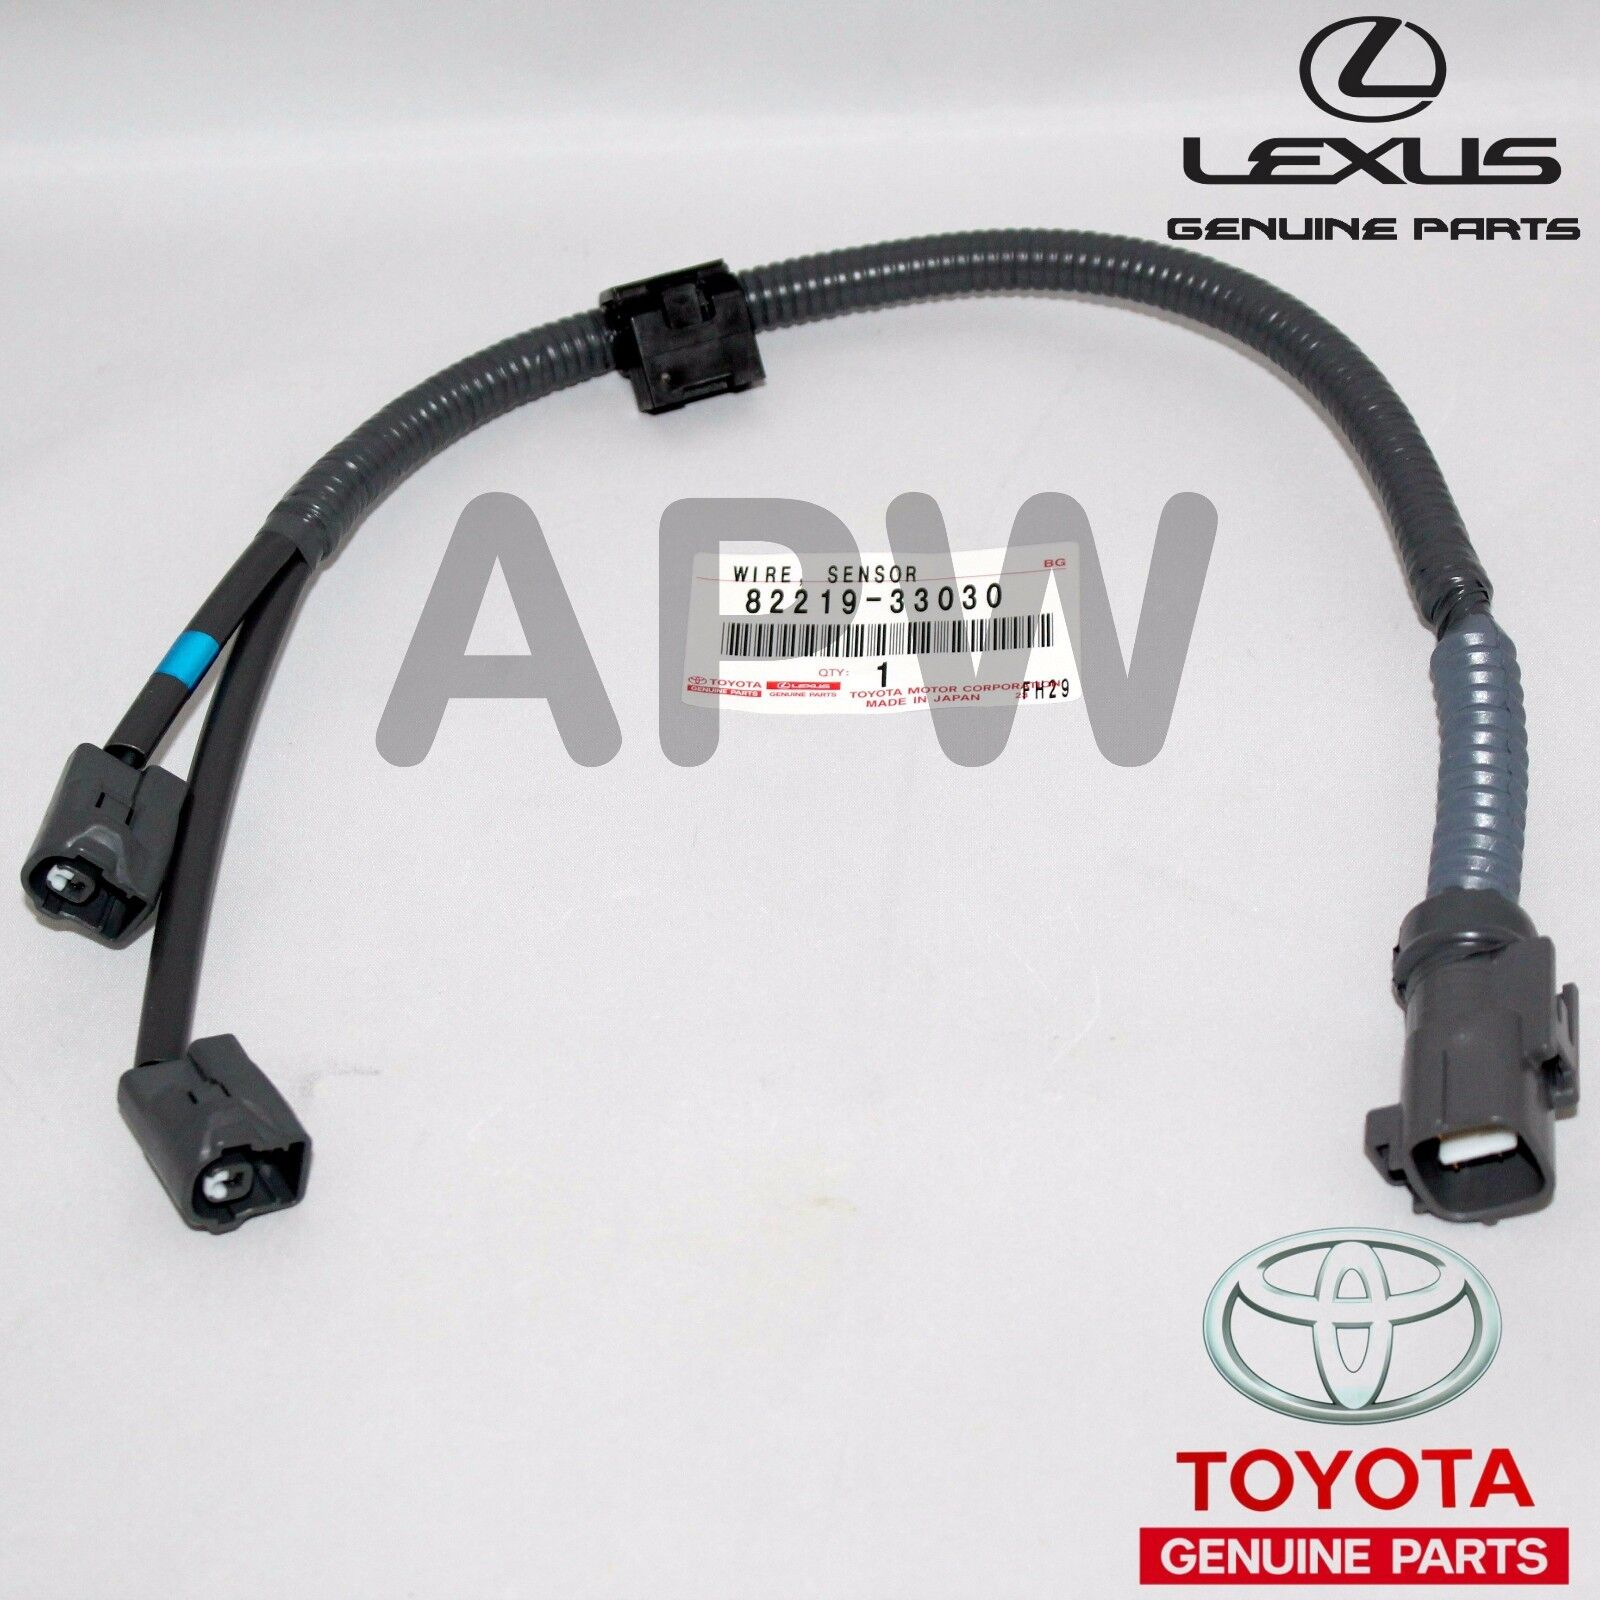 New Genuine Lexus Toyota Knock Sensor Wire Harness 30l Oem 82219 Wiring Parts 3 Of See More